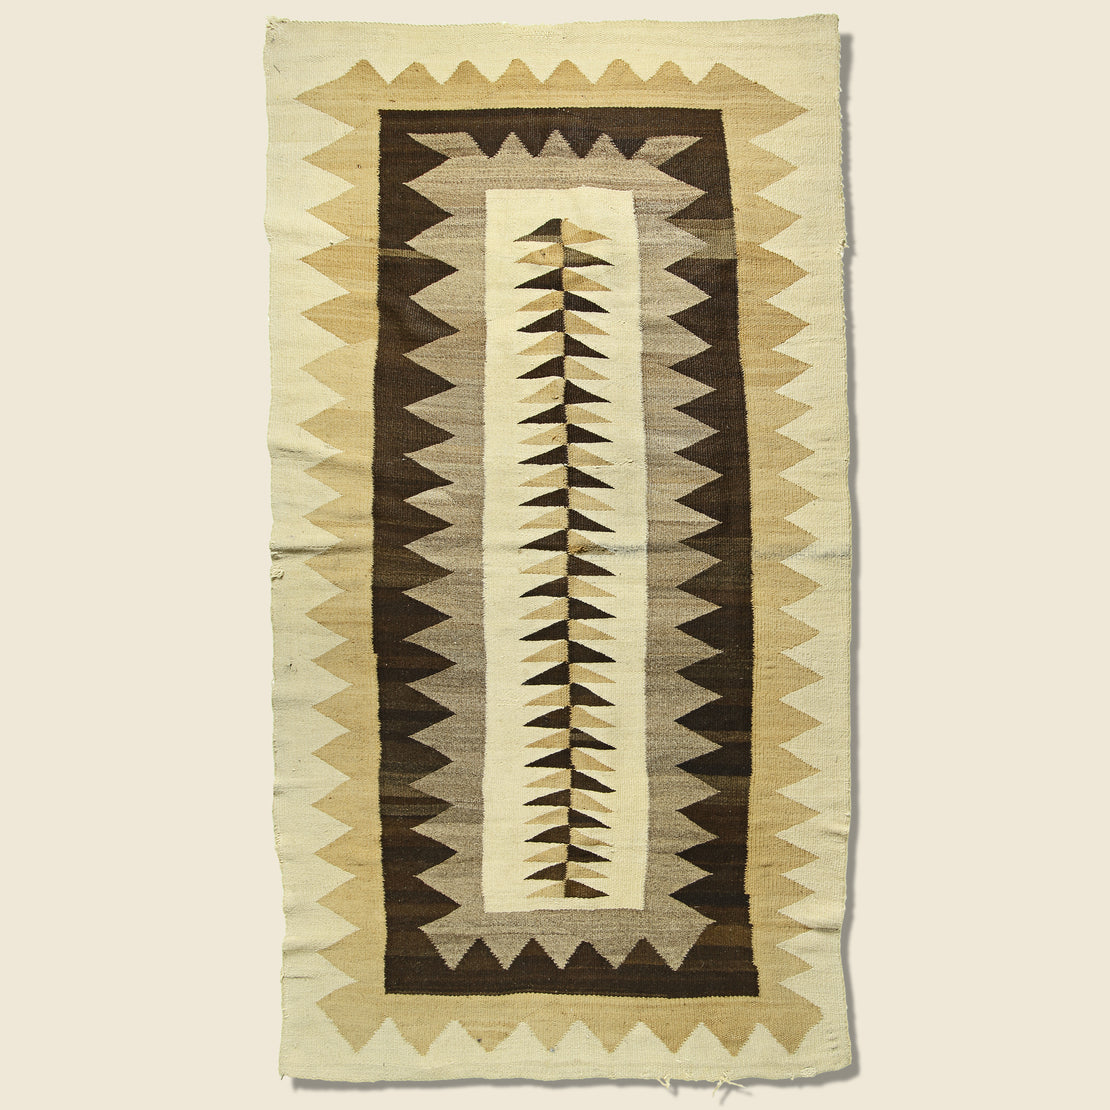 Vintage Zig-Zag Hand-Woven Navajo Wool Rug - Natural Brown